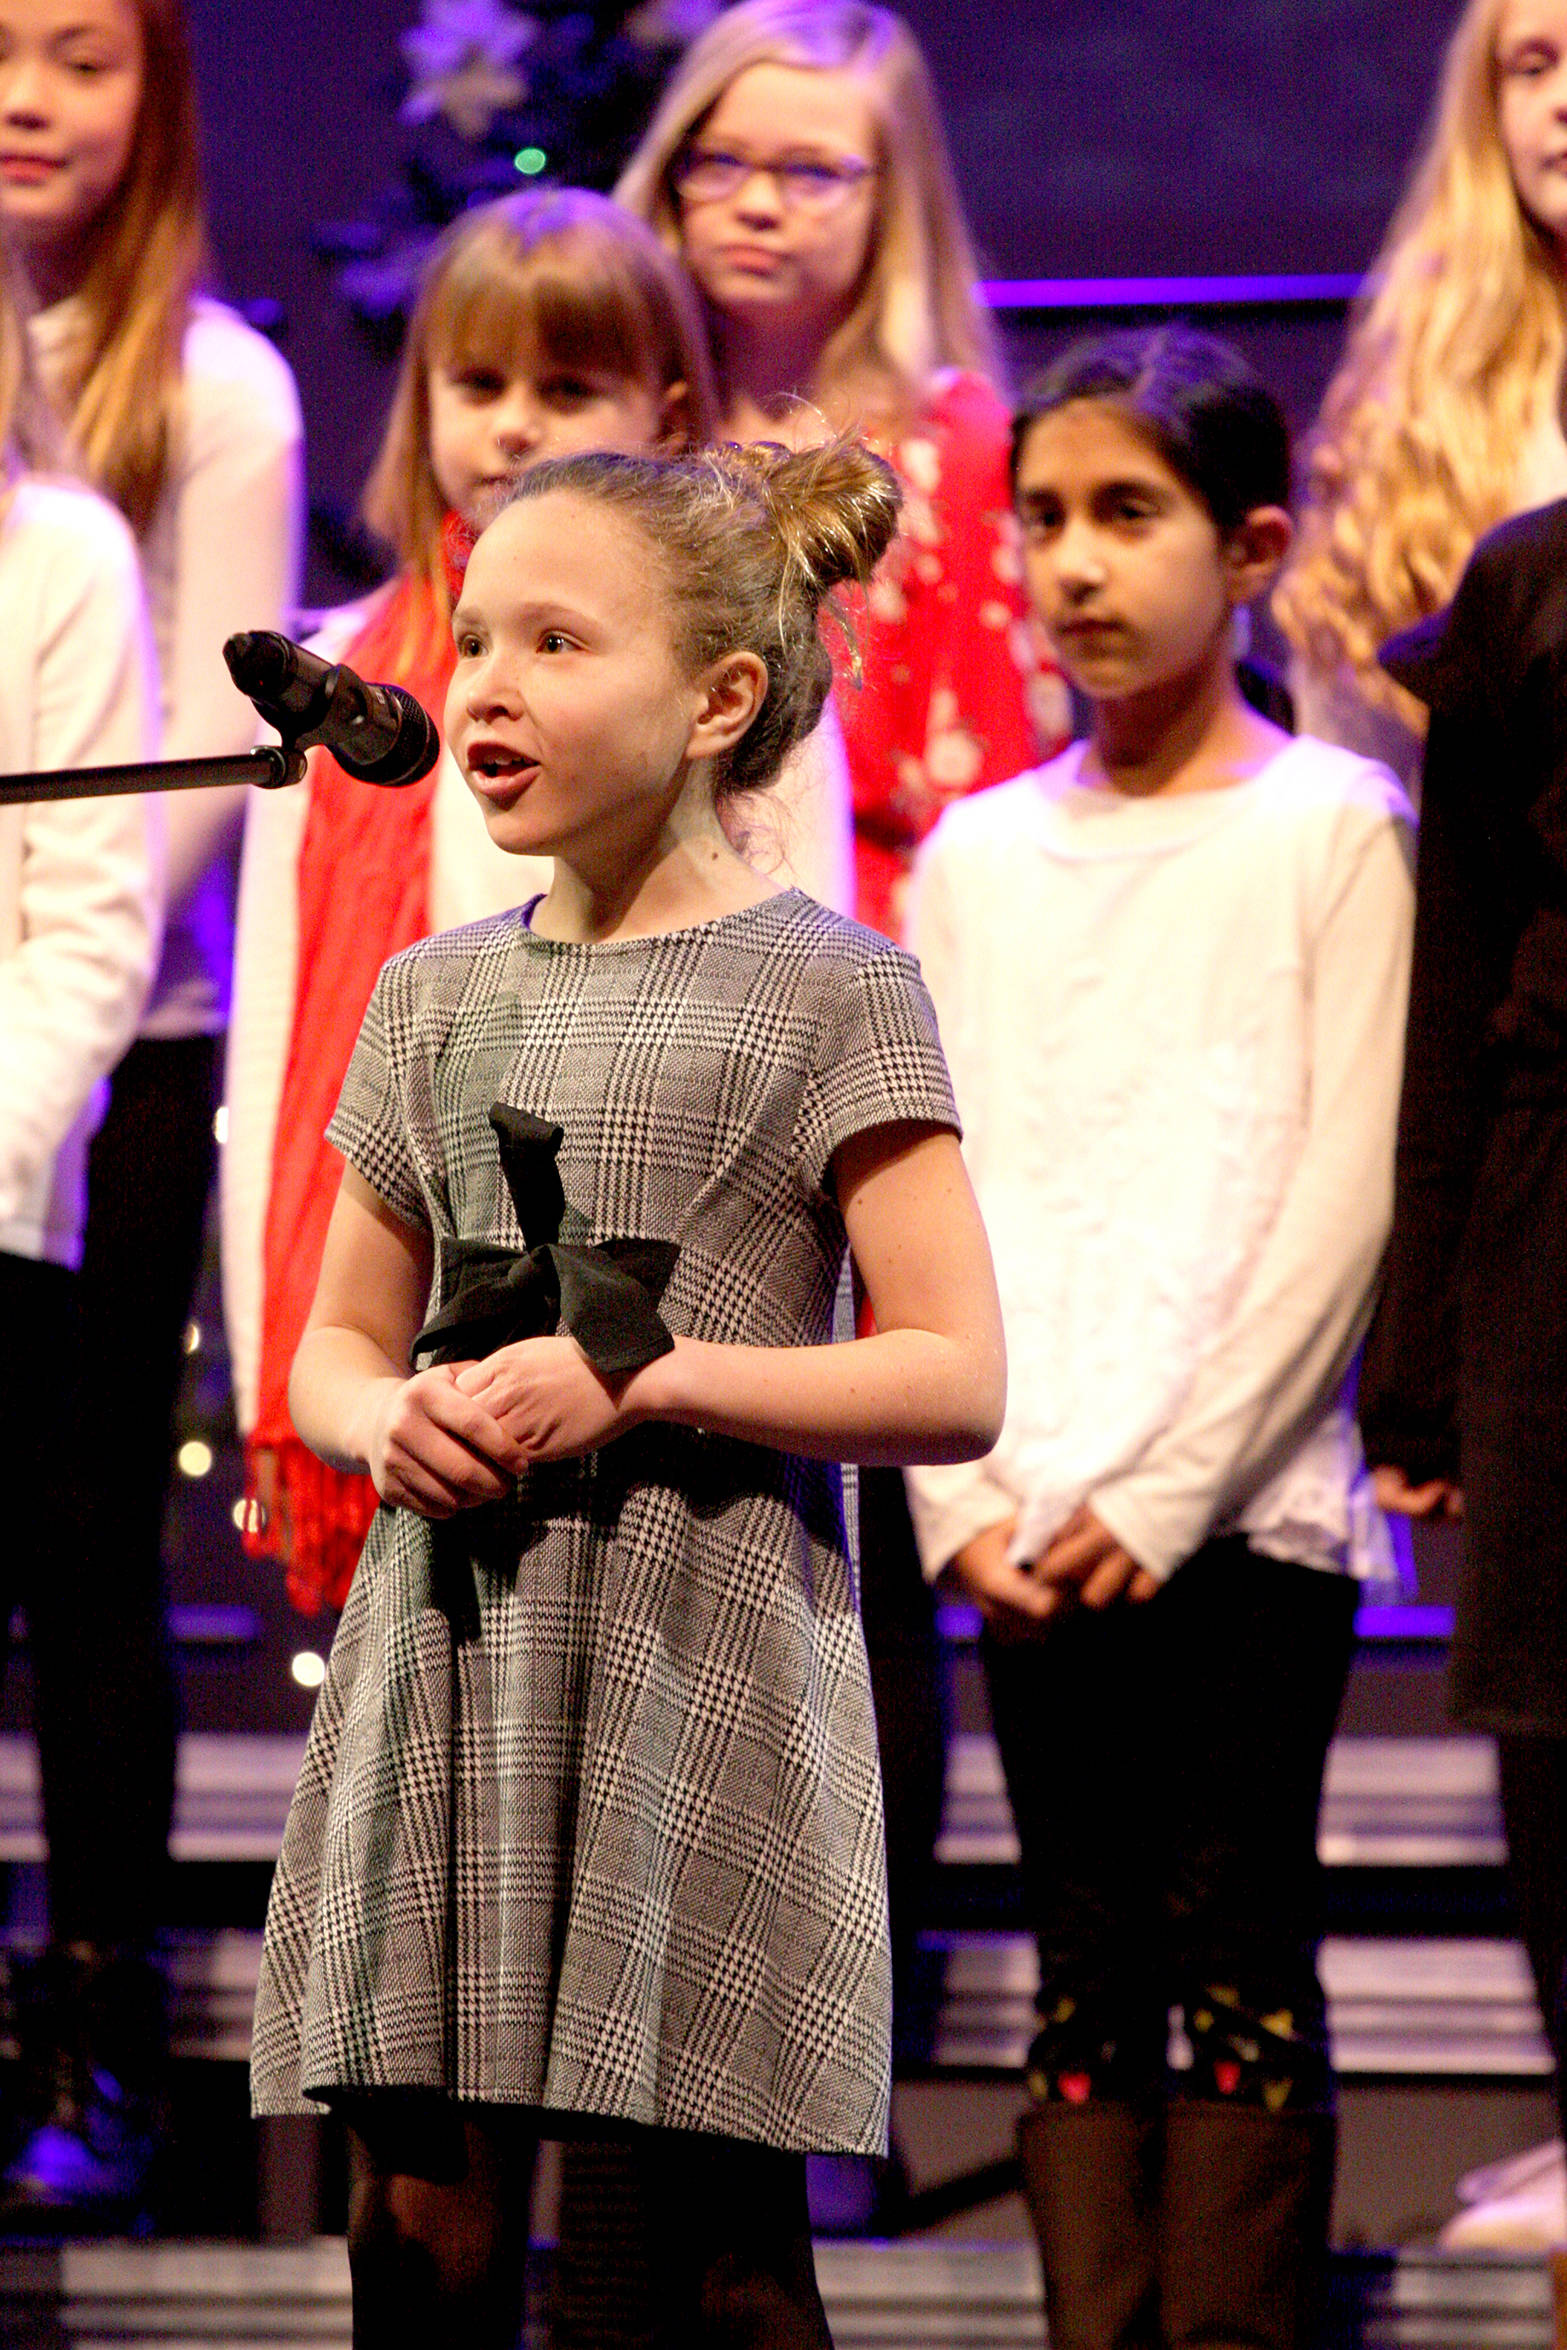 """Autumn Sunderland sings a solo for """"We Need a Little Christmas"""" with fellow BX Elementary choir members during last year's Rotary Carol Festival, which returns this weekend to the Vernon and District Performing Arts Centre. (Jennifer Smith - Morning Star)"""